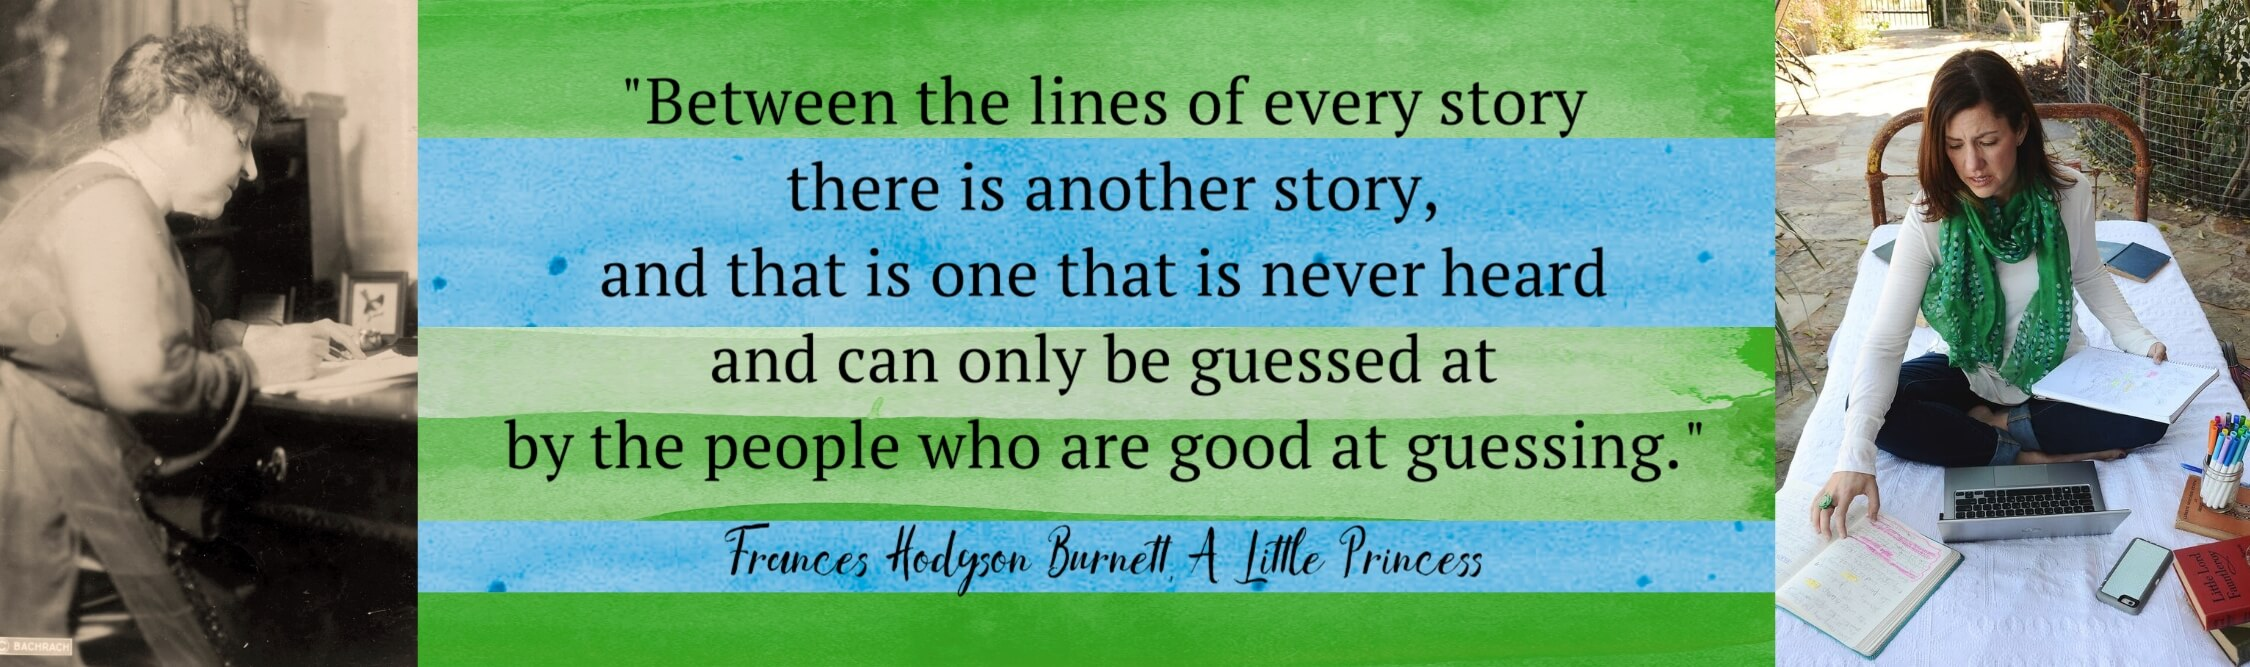 """""""Between the lines of every story there is another story, and that is one that is never heard and can only be guessed at by the people who are good at guessing."""""""